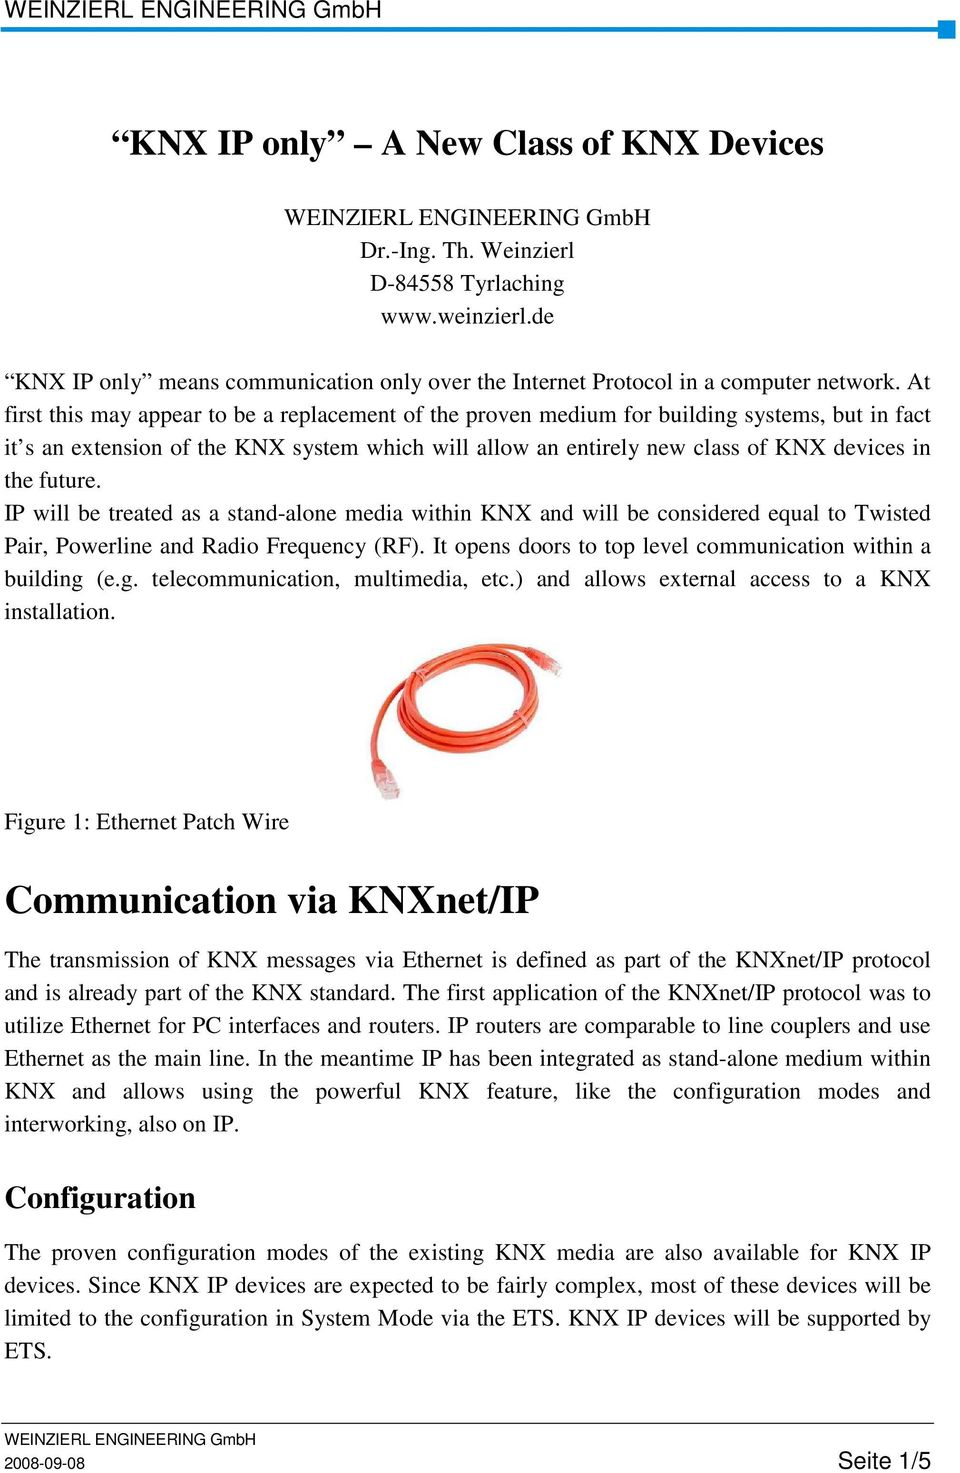 Knx Ip Only A New Class Of Devices Weinzierl Engineering Gmbh Poweroverethernet Poe On Industrialbased Networking Fig 2 Future Will Be Treated As Stand Alone Media Within And